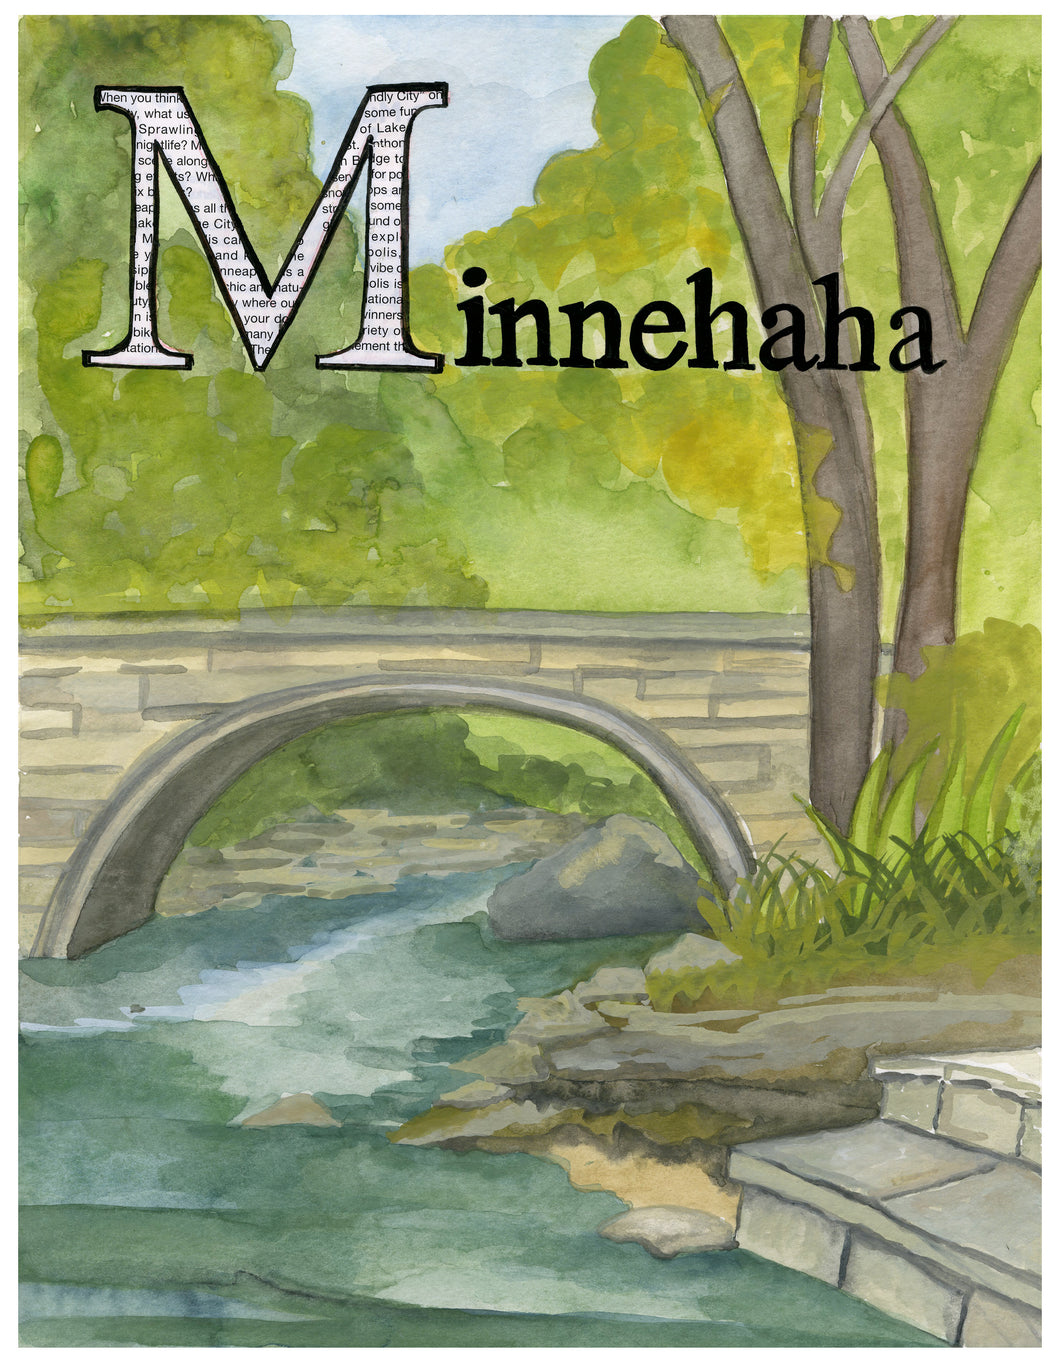 M is for Minnehaha